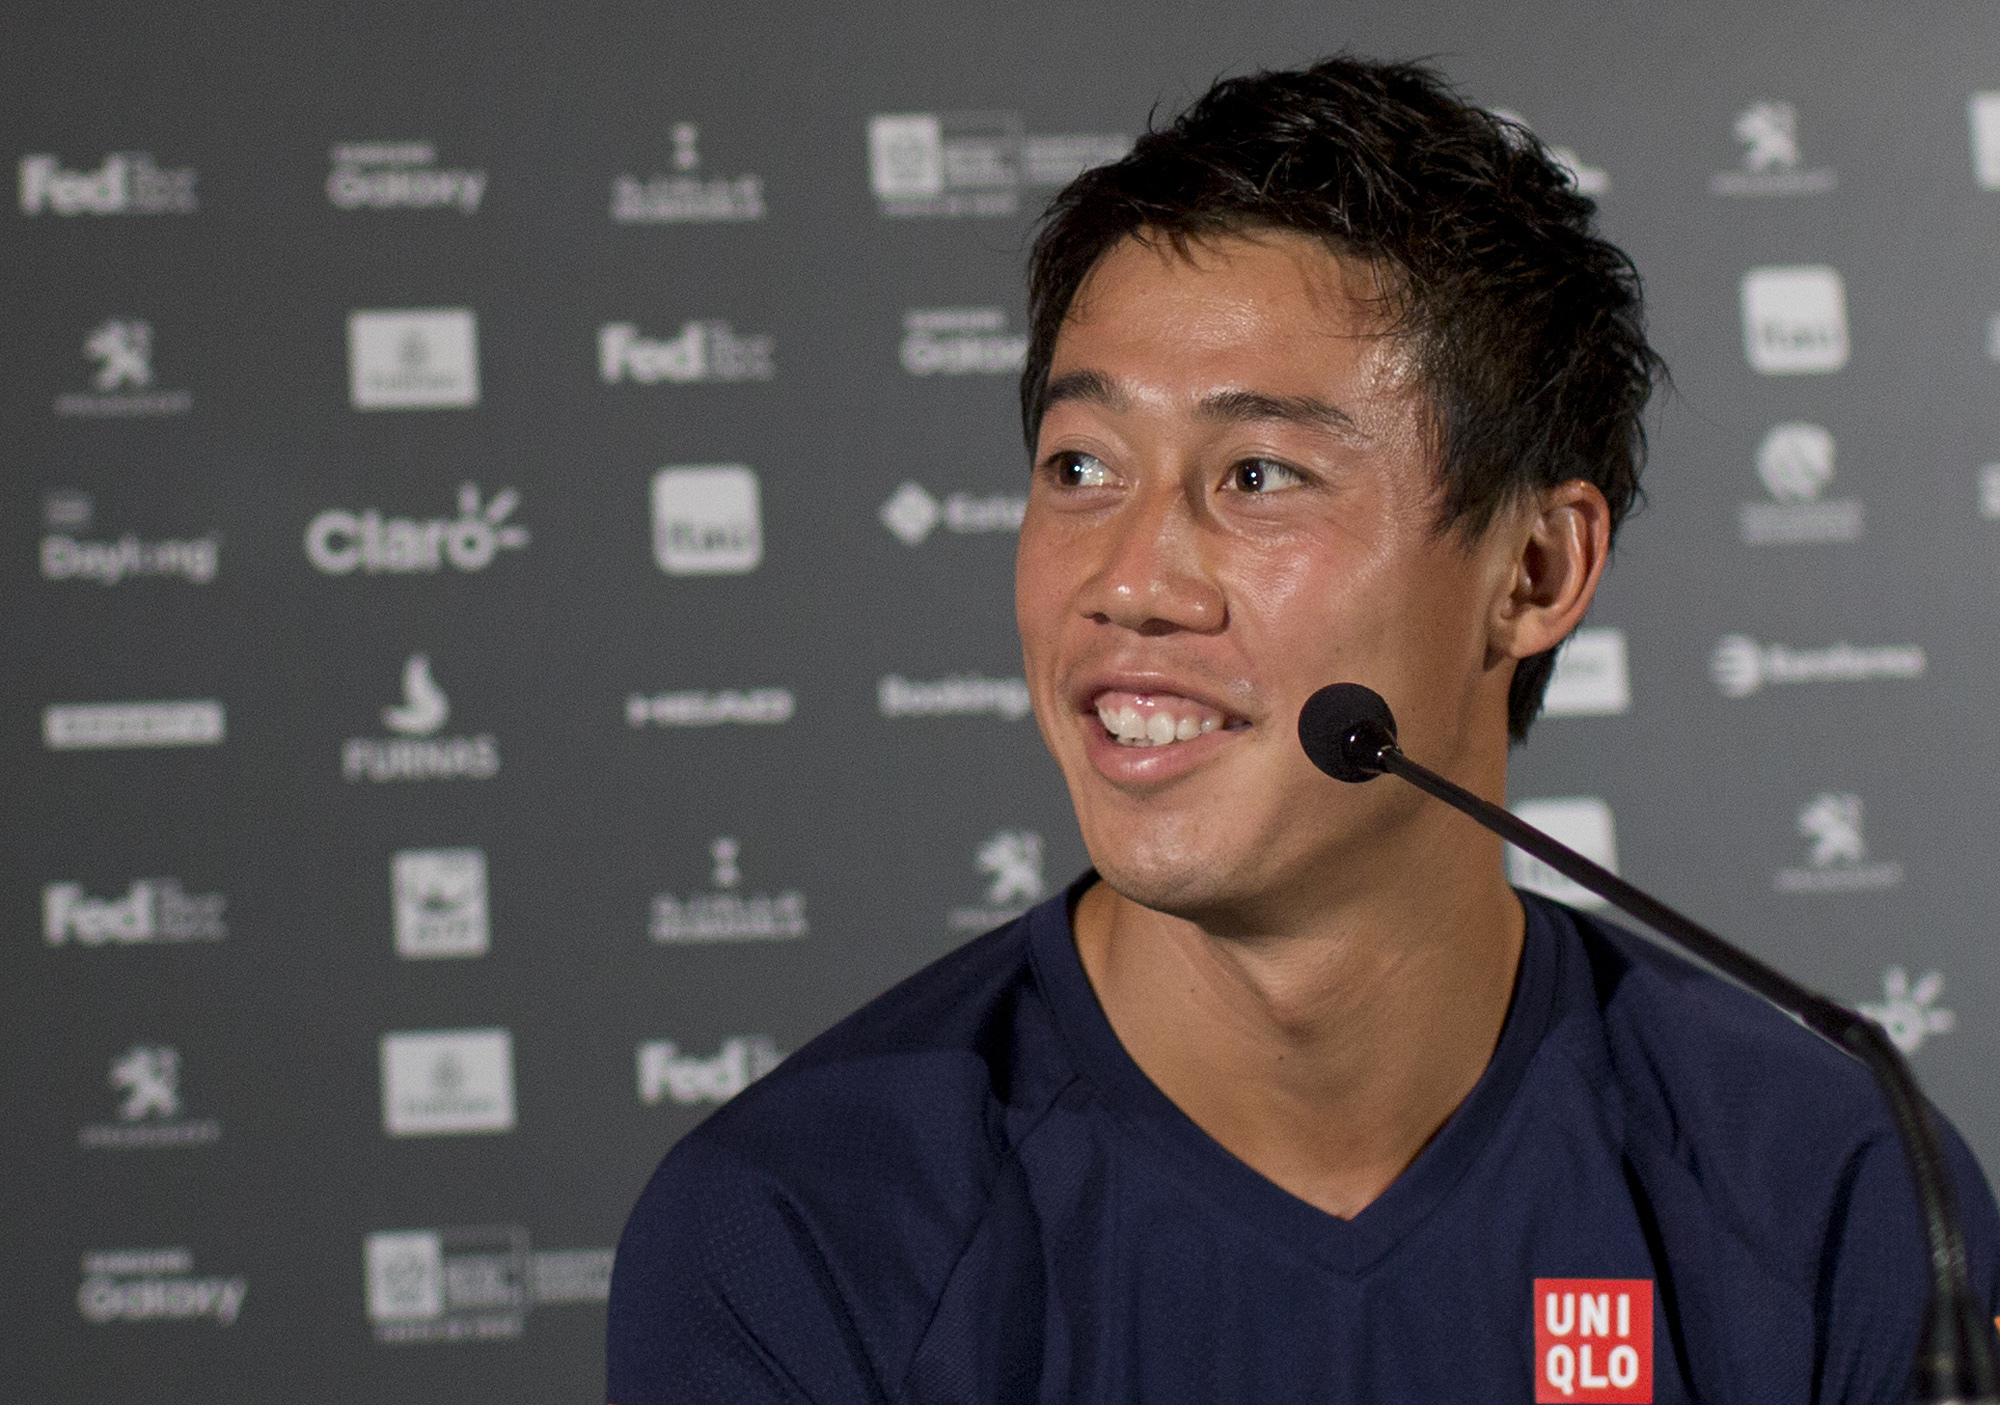 Japan's Kei Nishikori smiles during a press conference at the Rio Open tennis tournament in Rio de Janeiro, Brazil, Monday, Feb. 20, 2017. (AP Photo/Silvia Izquierdo)